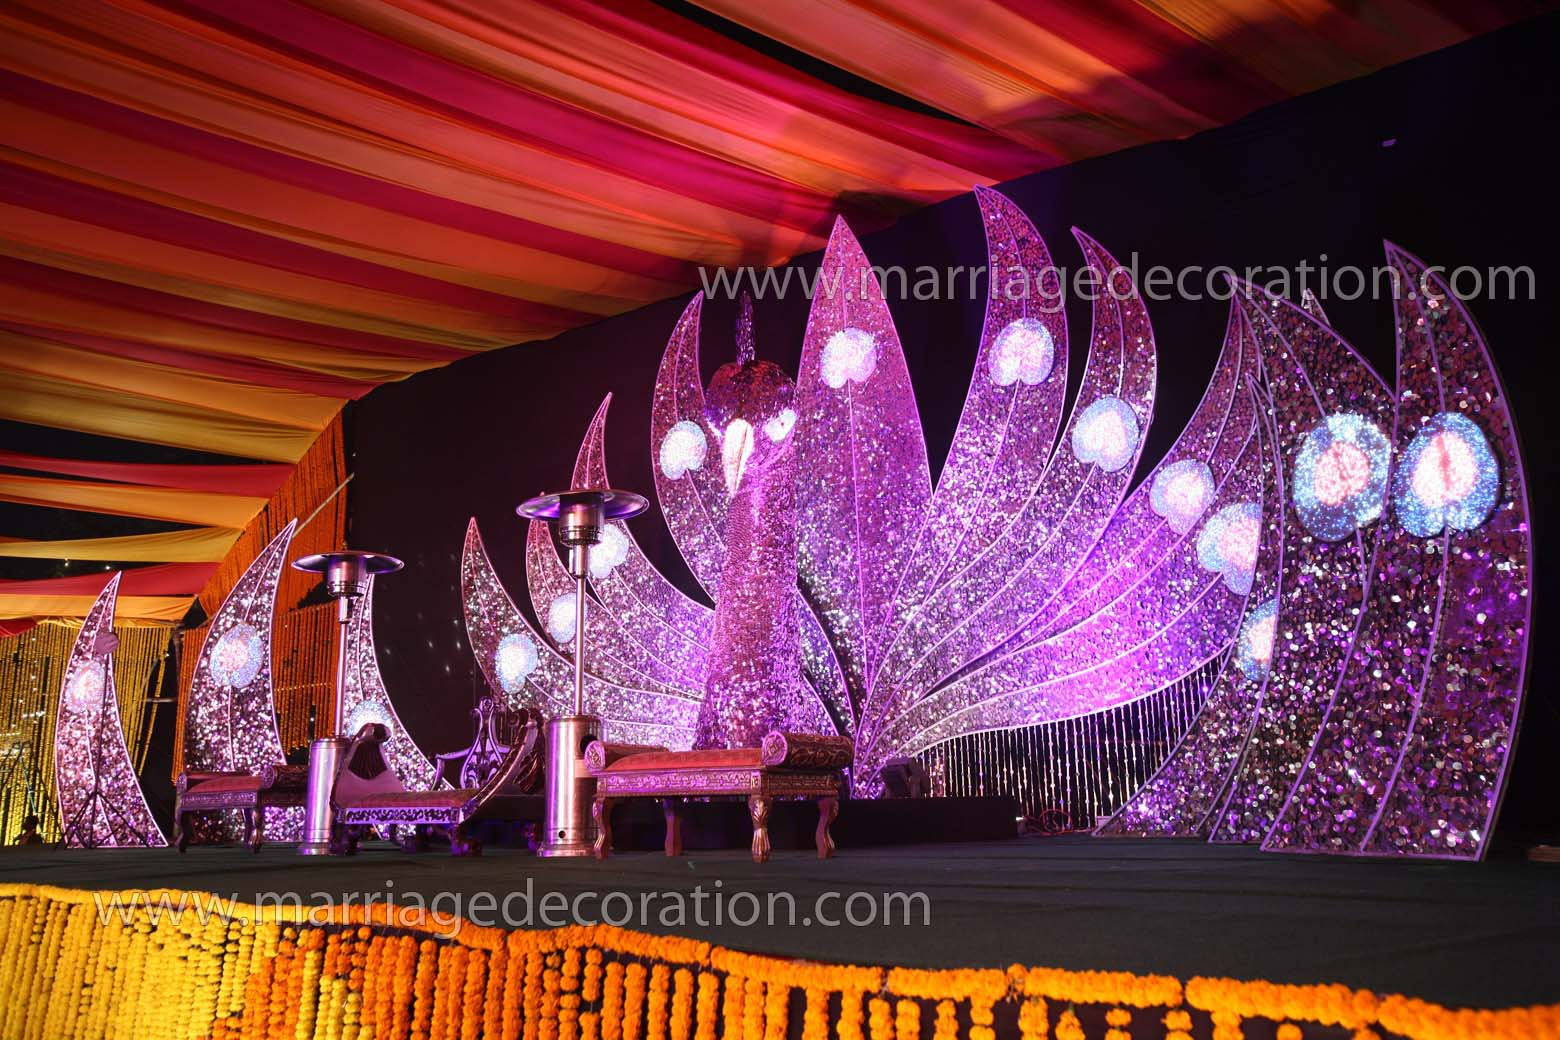 Wedding decorations kolkata stage decorations in decorations wedding kolkata hirers event and wedding decorators decorators decorators junglespirit Image collections